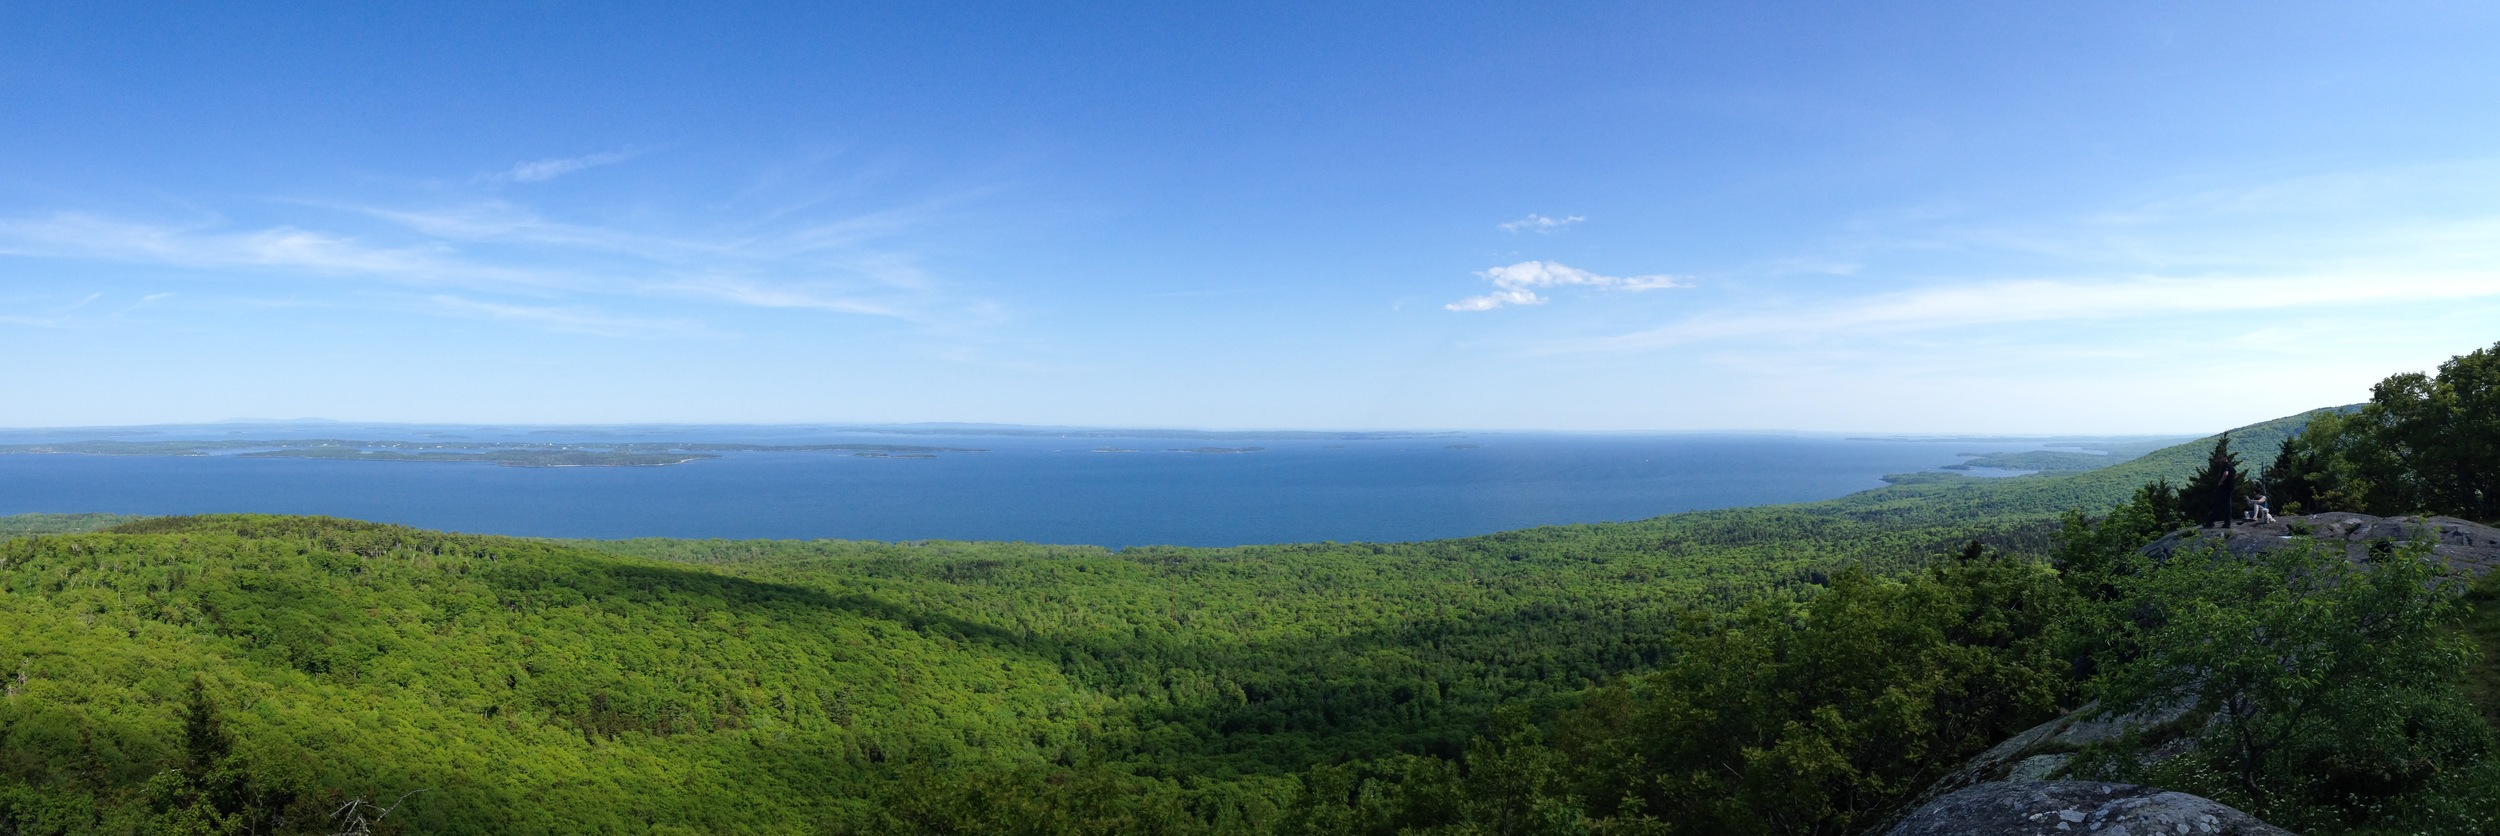 View from the summit of Bald Rock Mountain.   Lincolnville, Maine